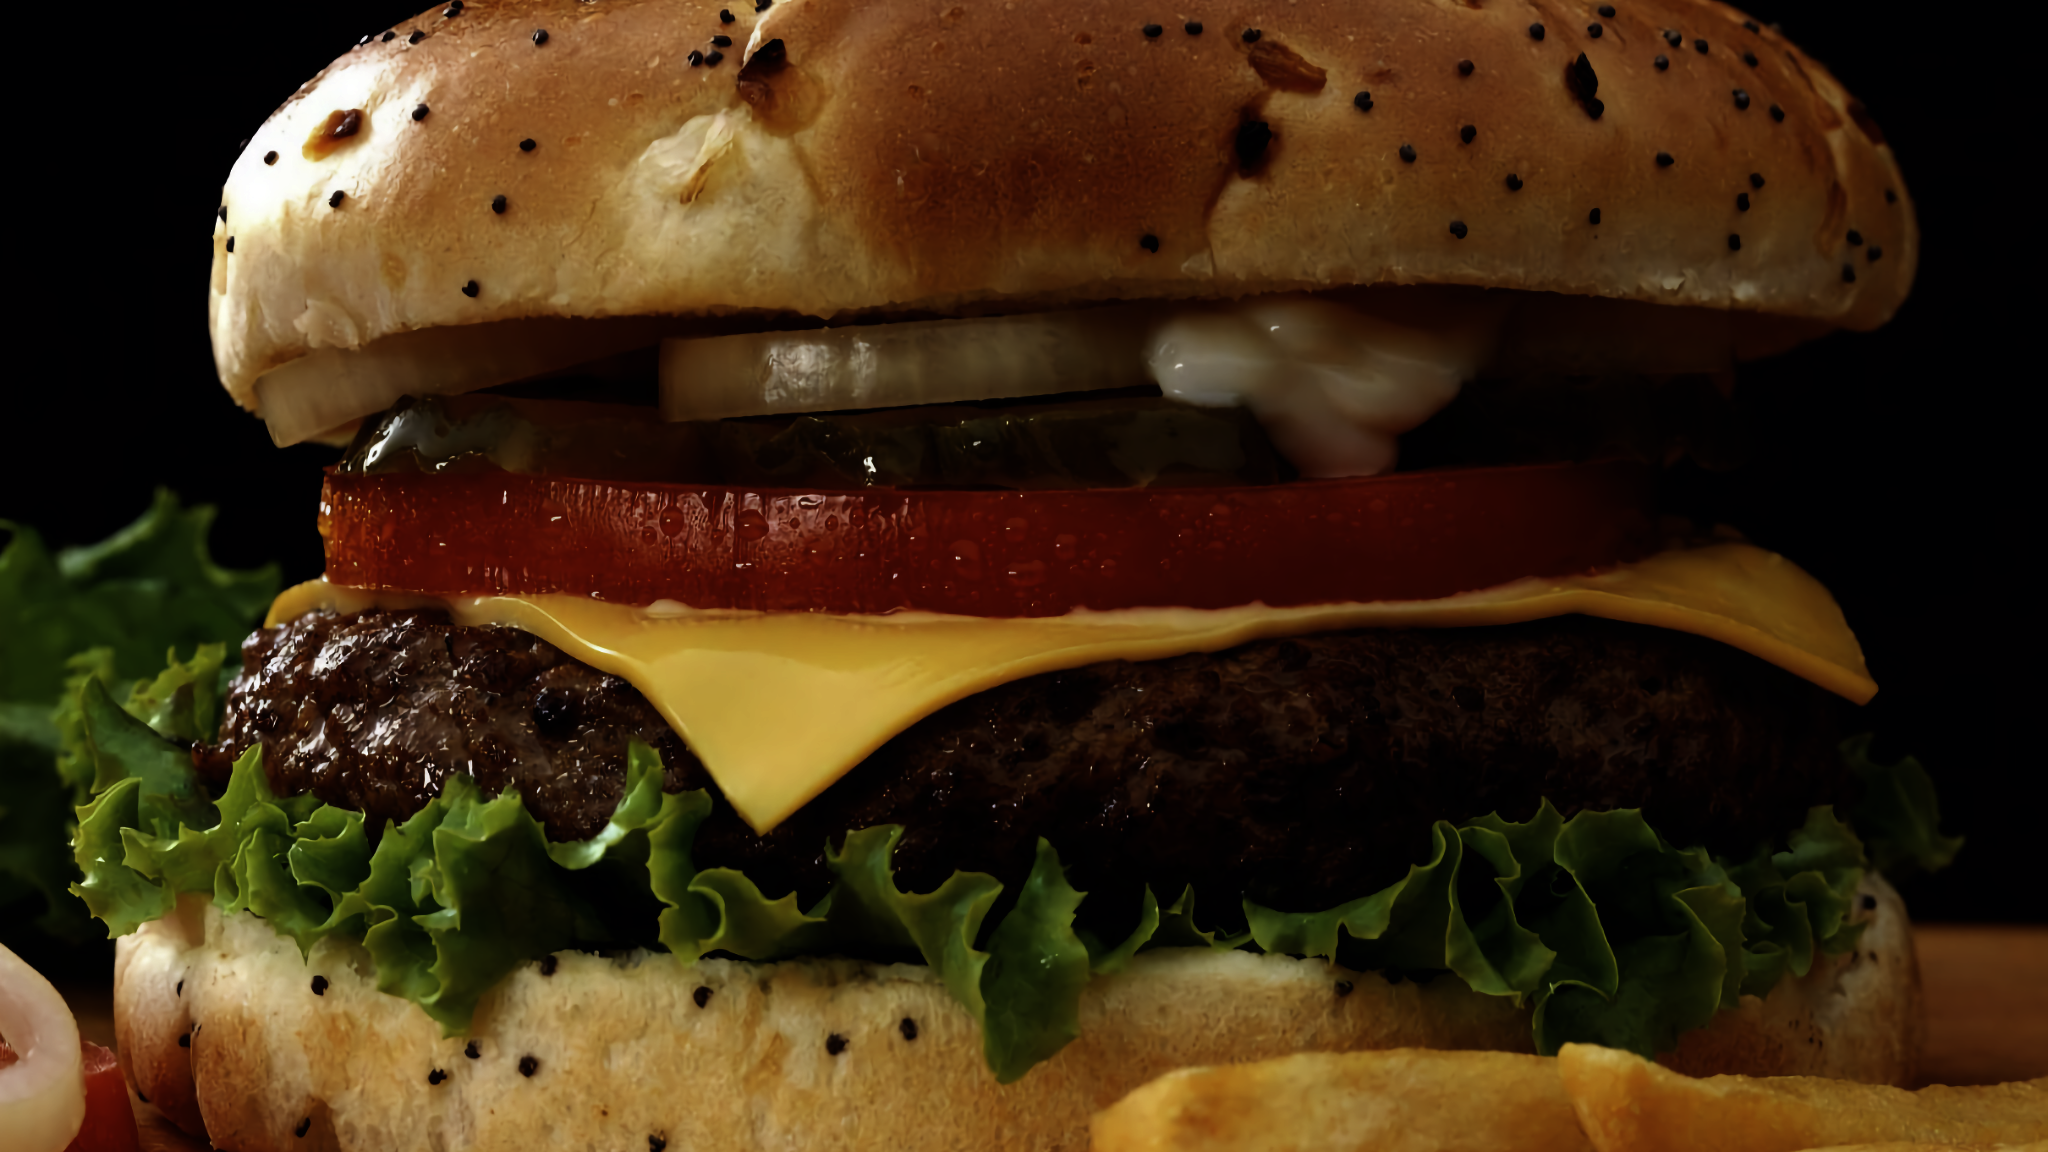 A close up picture of a delicious looking hamburger.